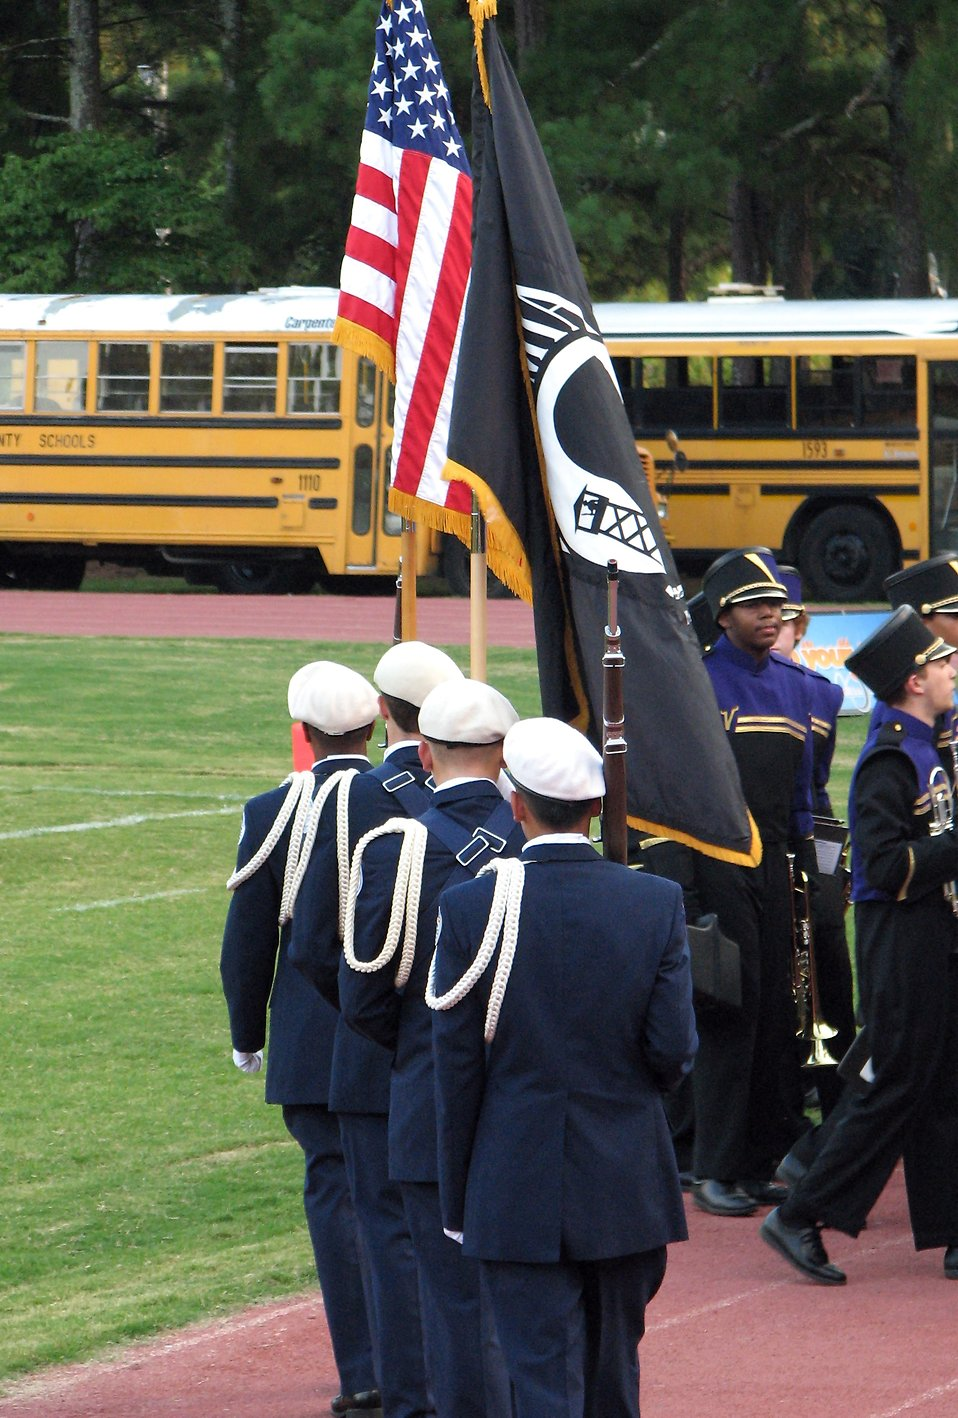 Young soldiers carrying a US flag on a football field : Free Stock Photo